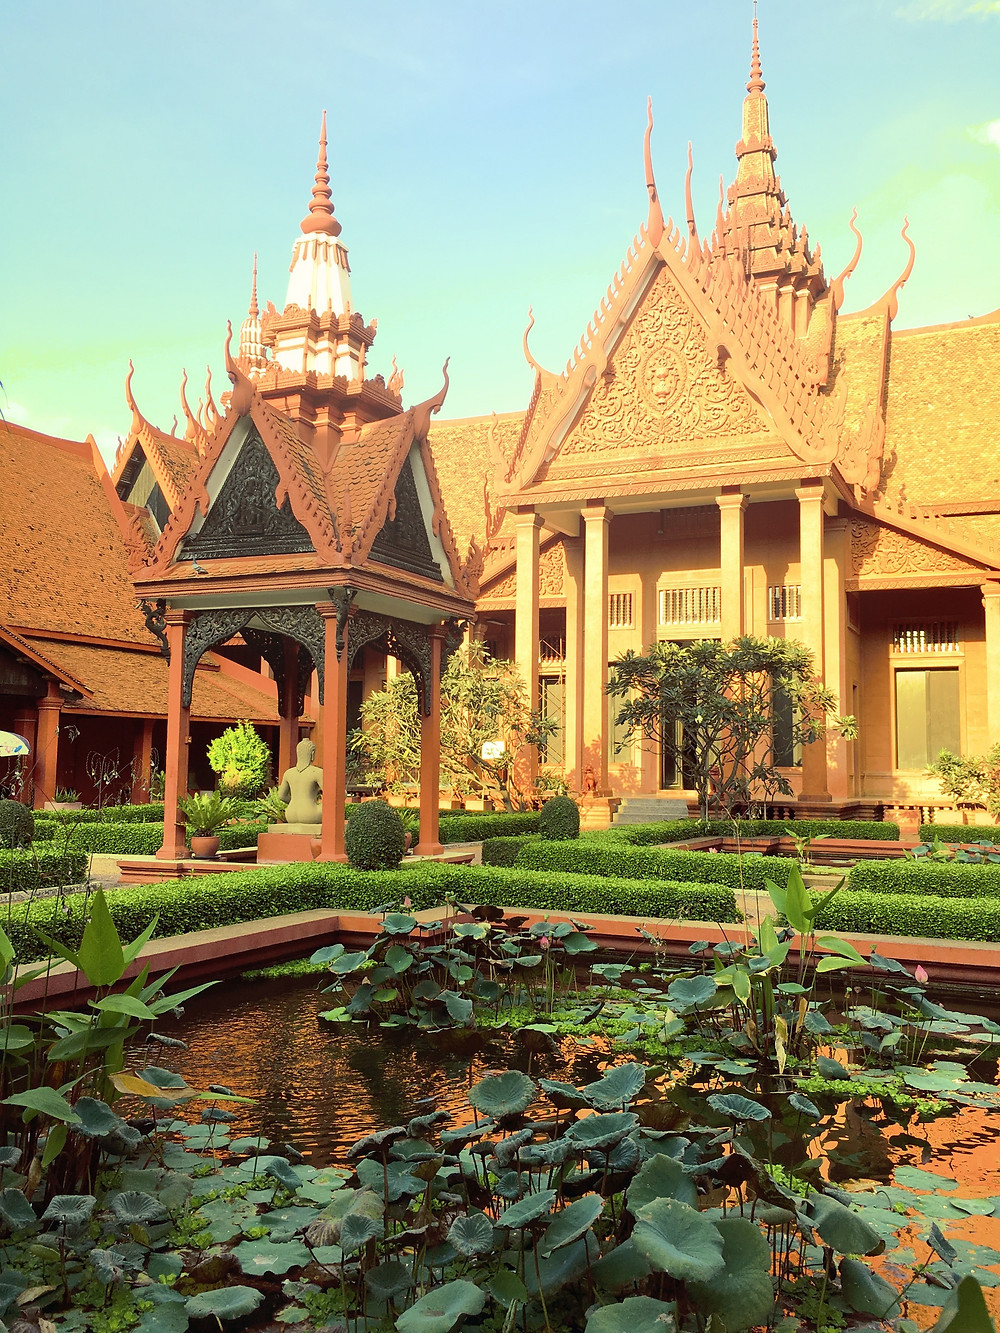 Within the grounds of the National Museum of Cambodia